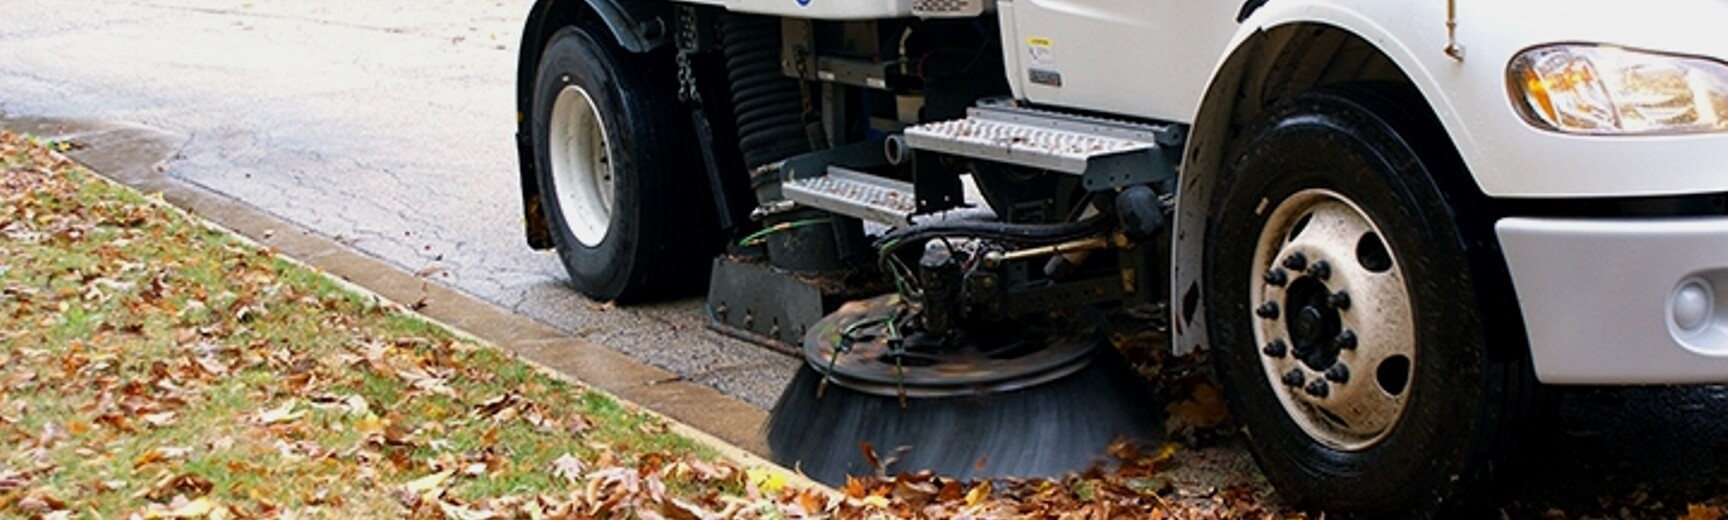 SuperSweep.ca (Super Sweep Street Cleaning Inc.) Vancouver Equipment